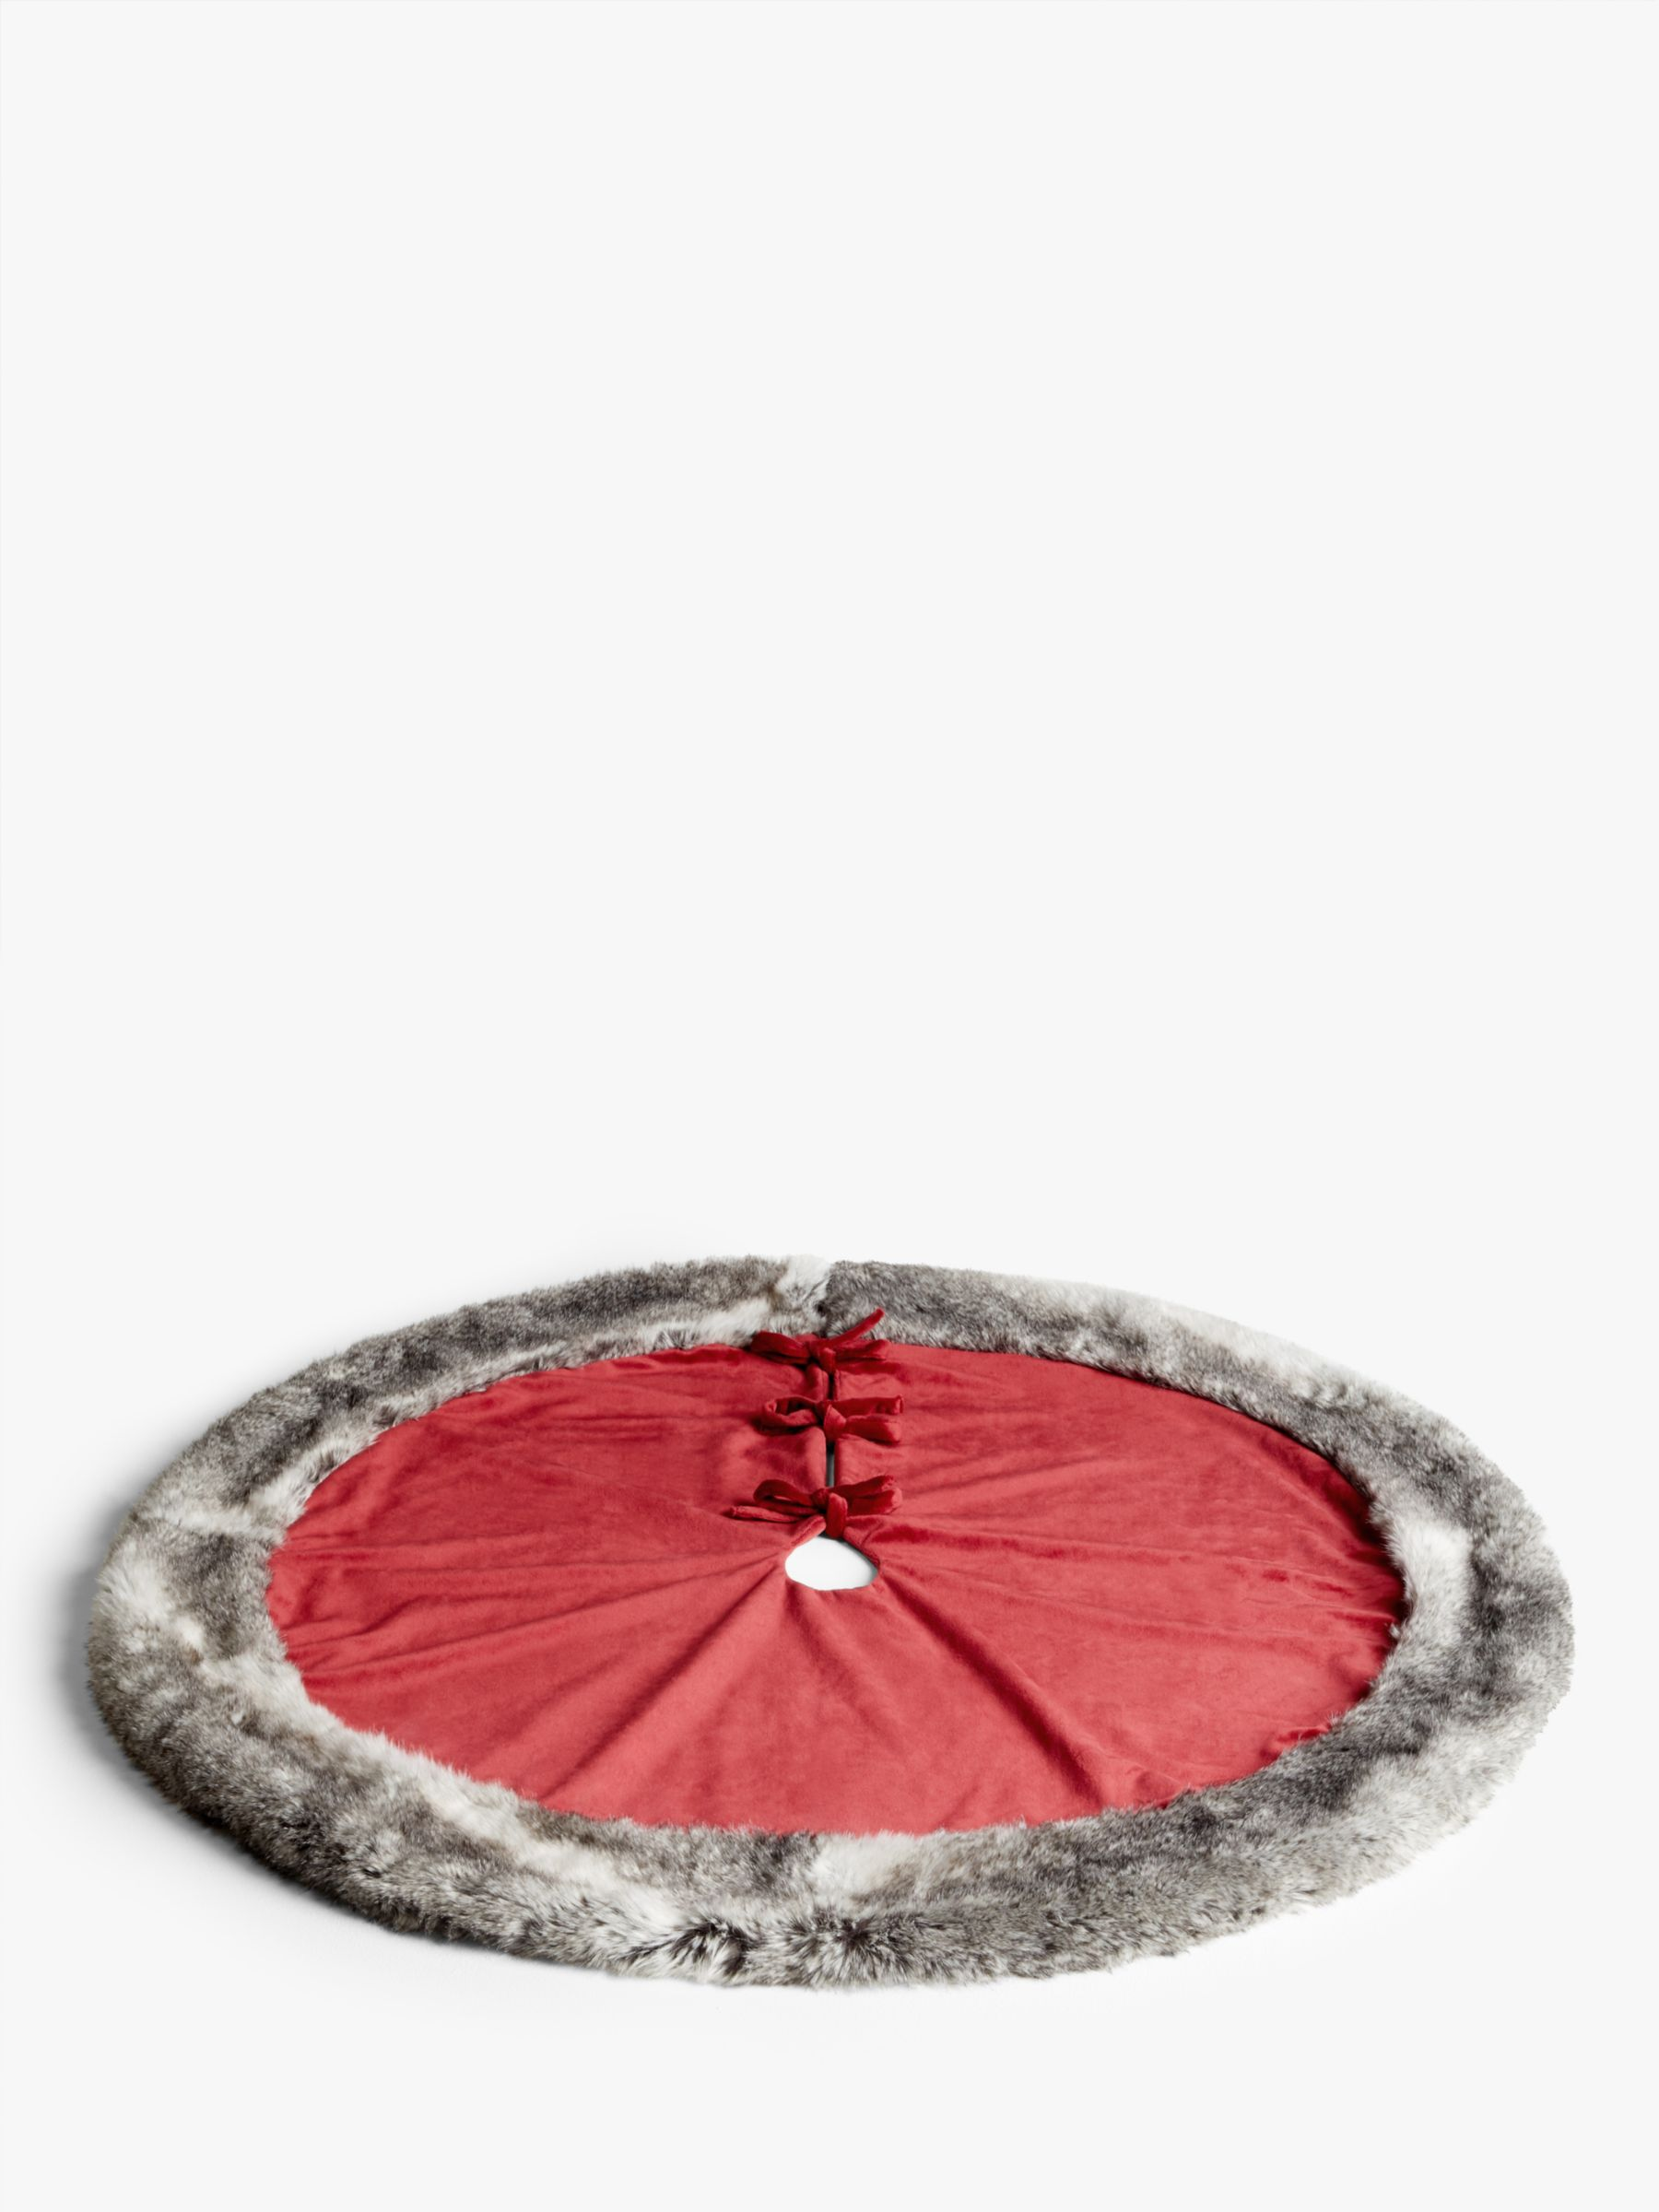 John Lewis Partners Traditions Faux Fur Trim Tree Skirt Red Grey At John Lewis Partners